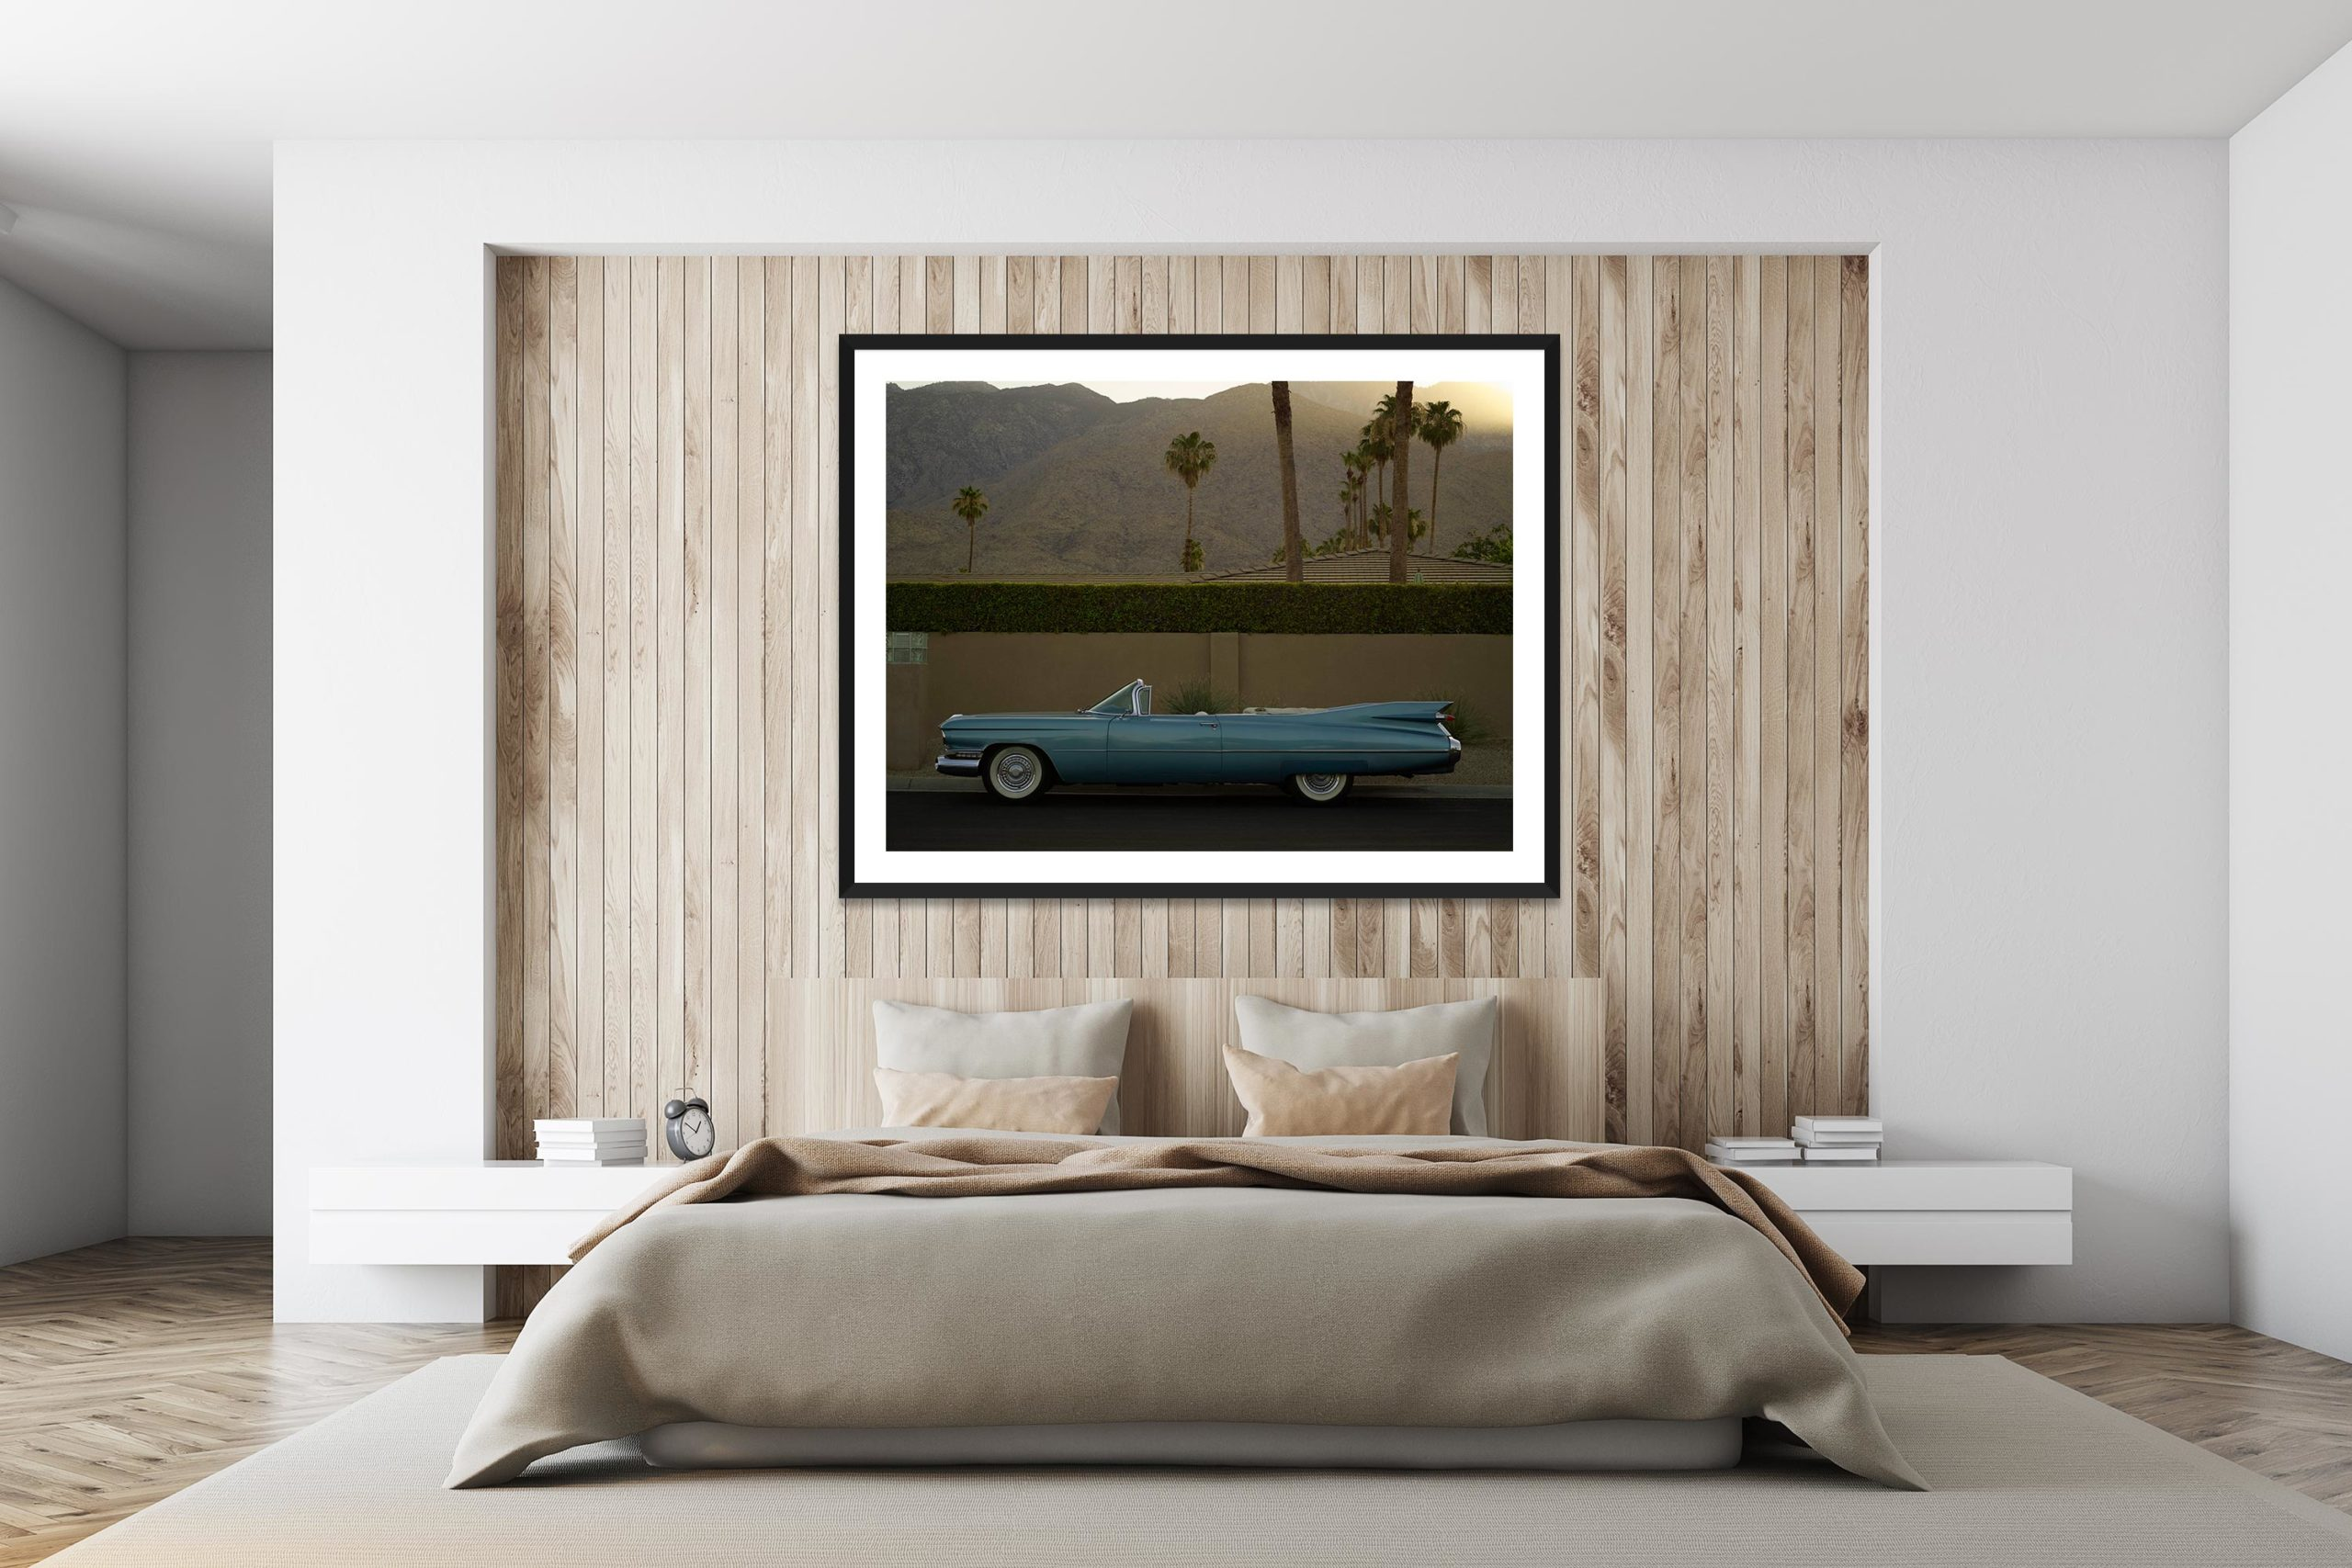 Sky Blue Cadillac - Black Frame - I Heart Palm Springs Collection - Fine Art Photography by Toby Dixon